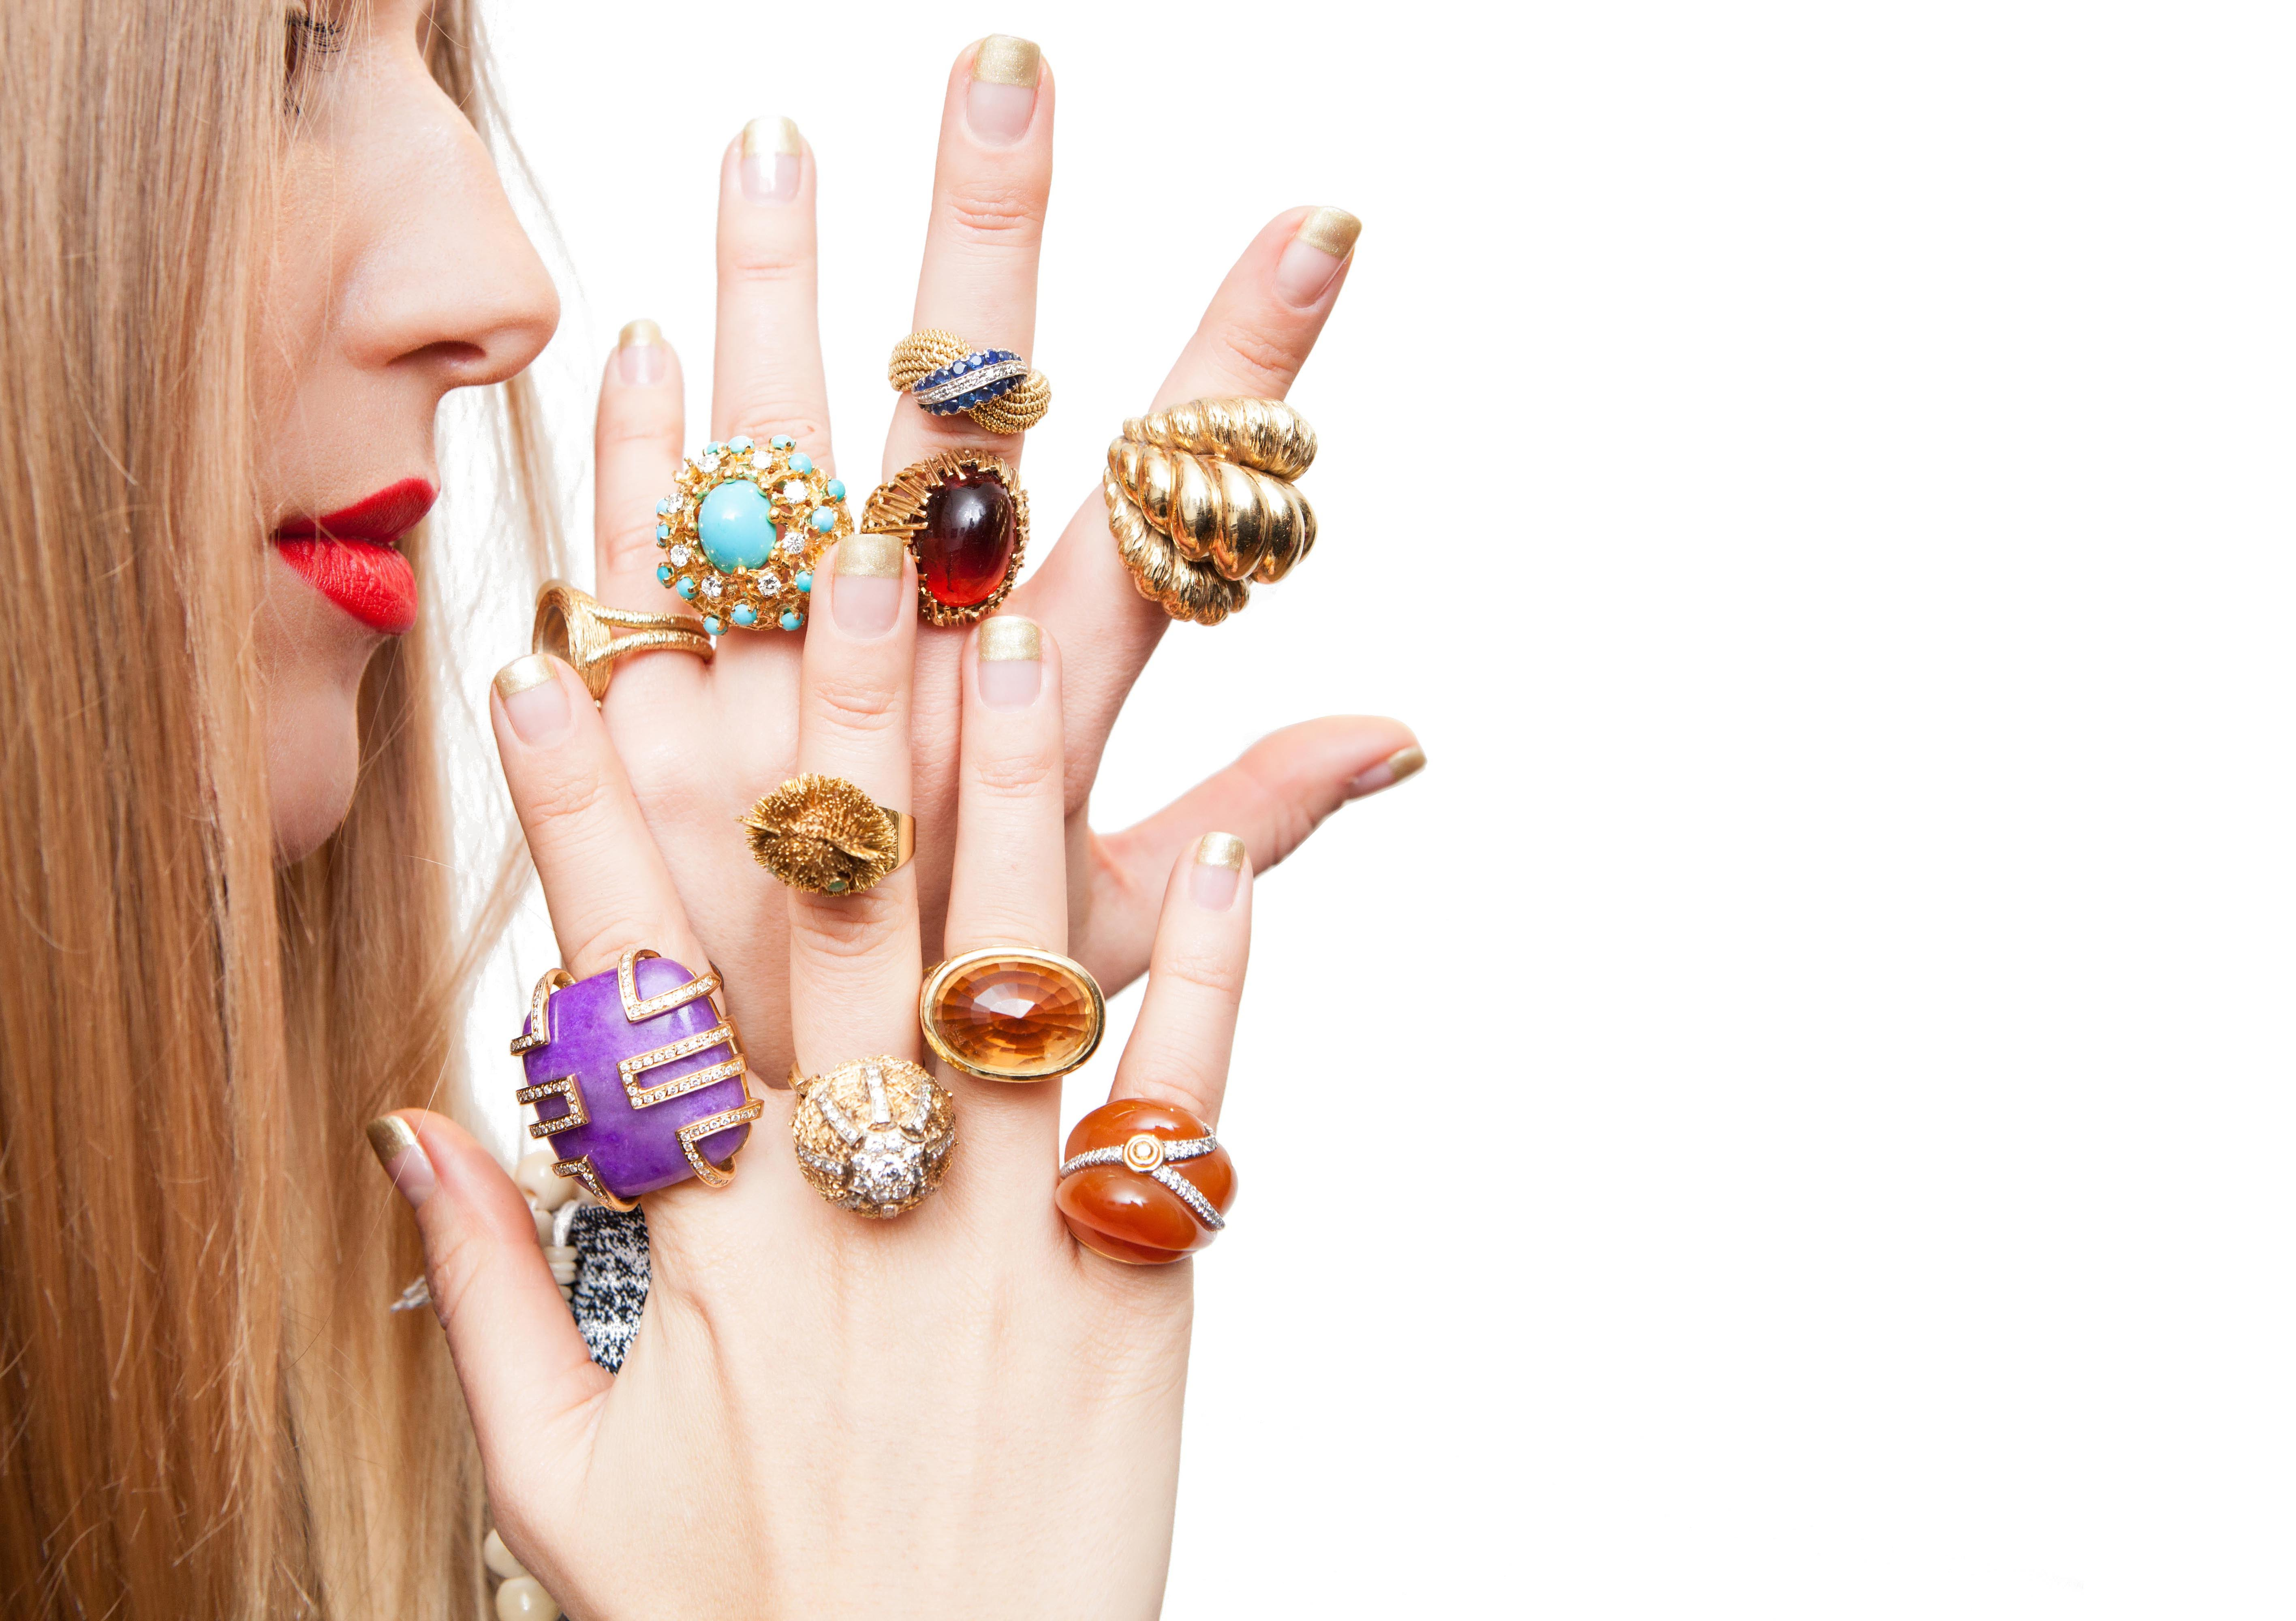 Liza Urla of Gemologue will share her jewellery styling tips with a select audience at The Jewellery Cut Live